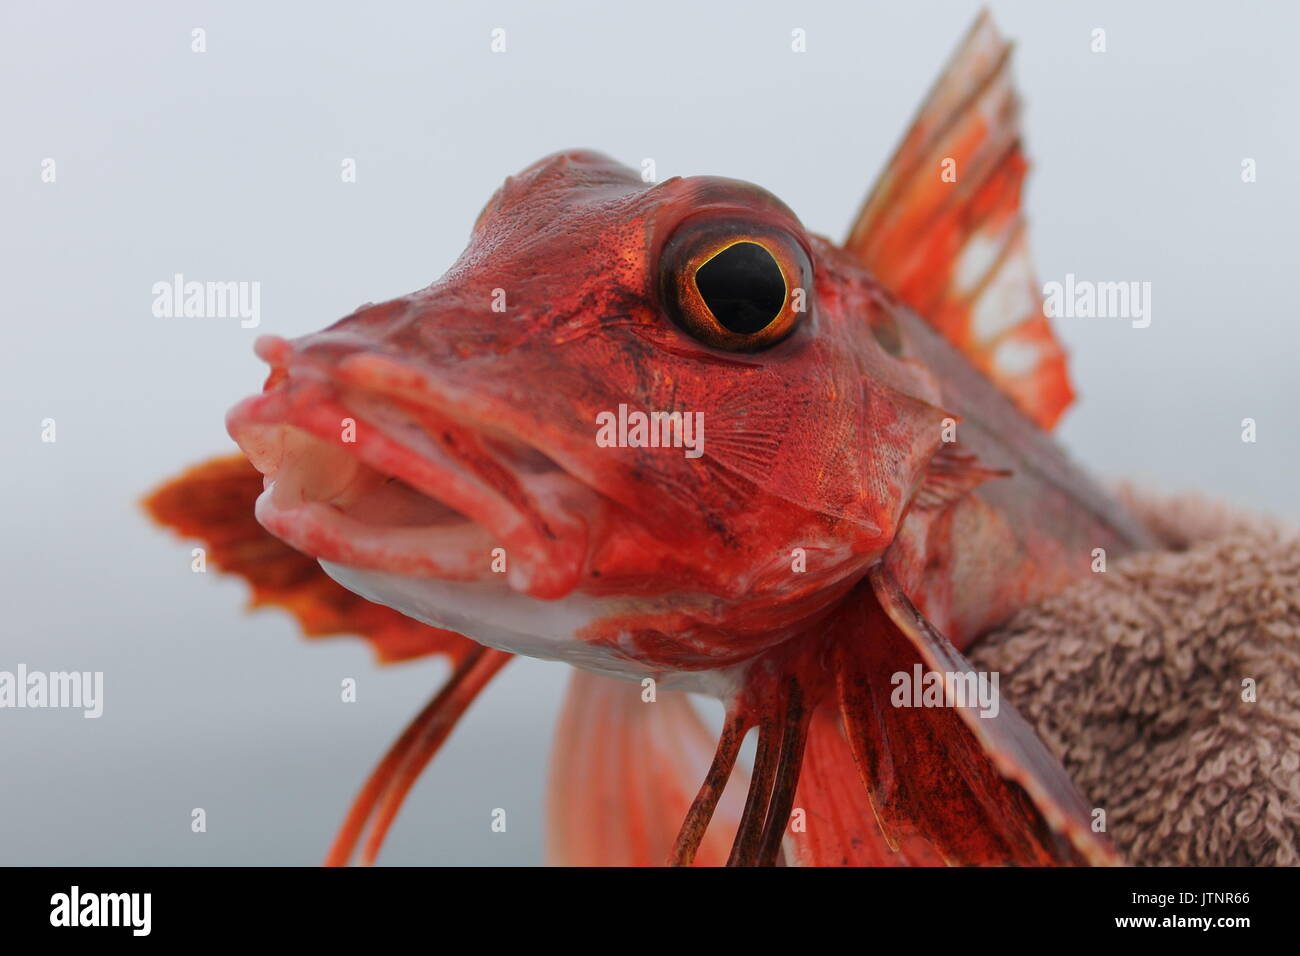 Fish Photograph Stock Photos & Fish Photograph Stock Images - Alamy